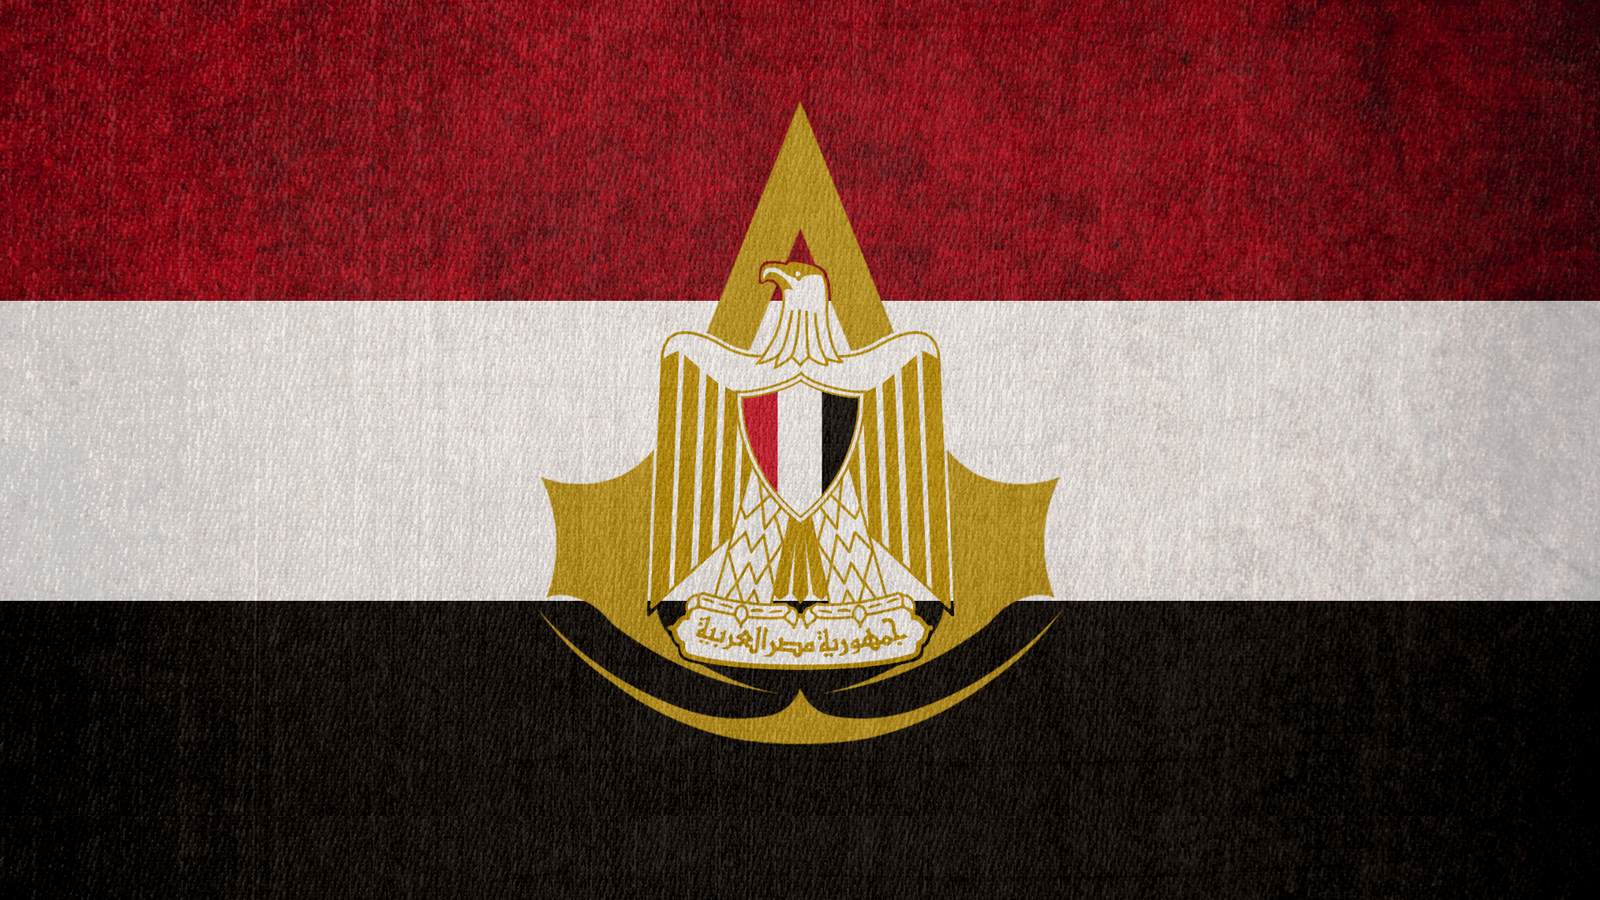 Assassin S Creed Flag Of The Egyptian Bureau Assassins Creed Assassins Creed Artwork Assassins Creed Art